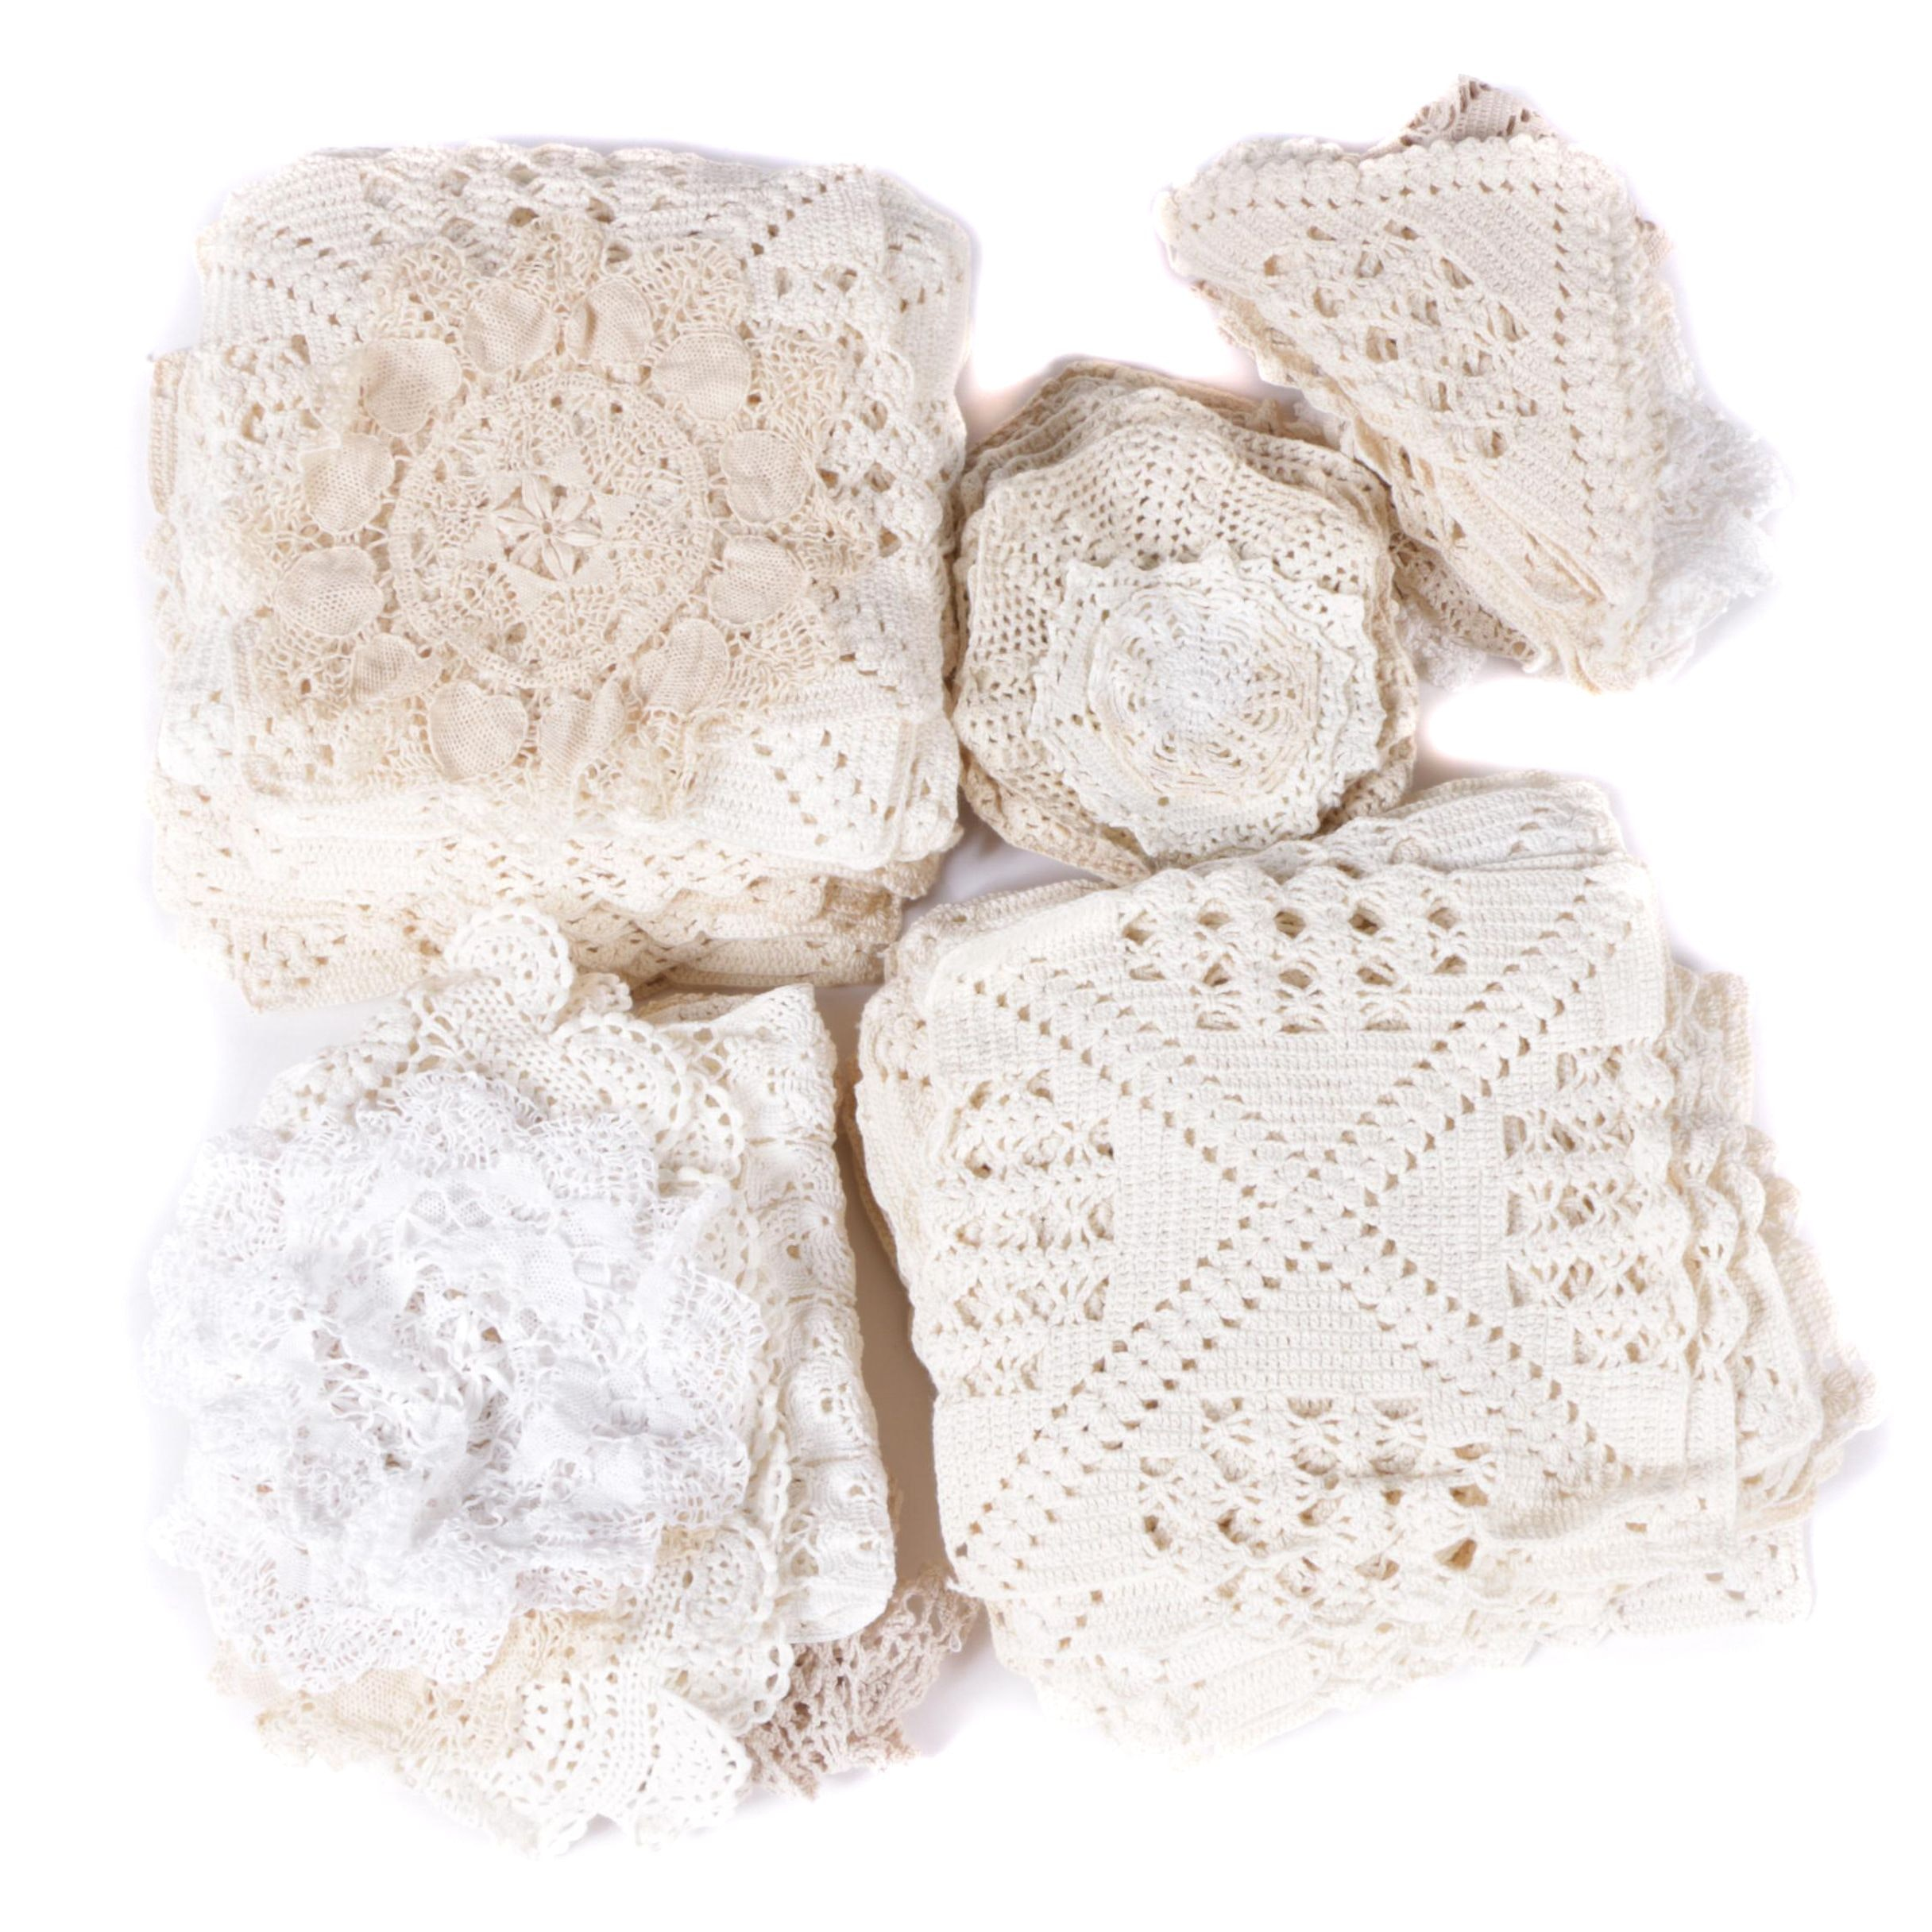 Collection of Vintage Crocheted Doilies